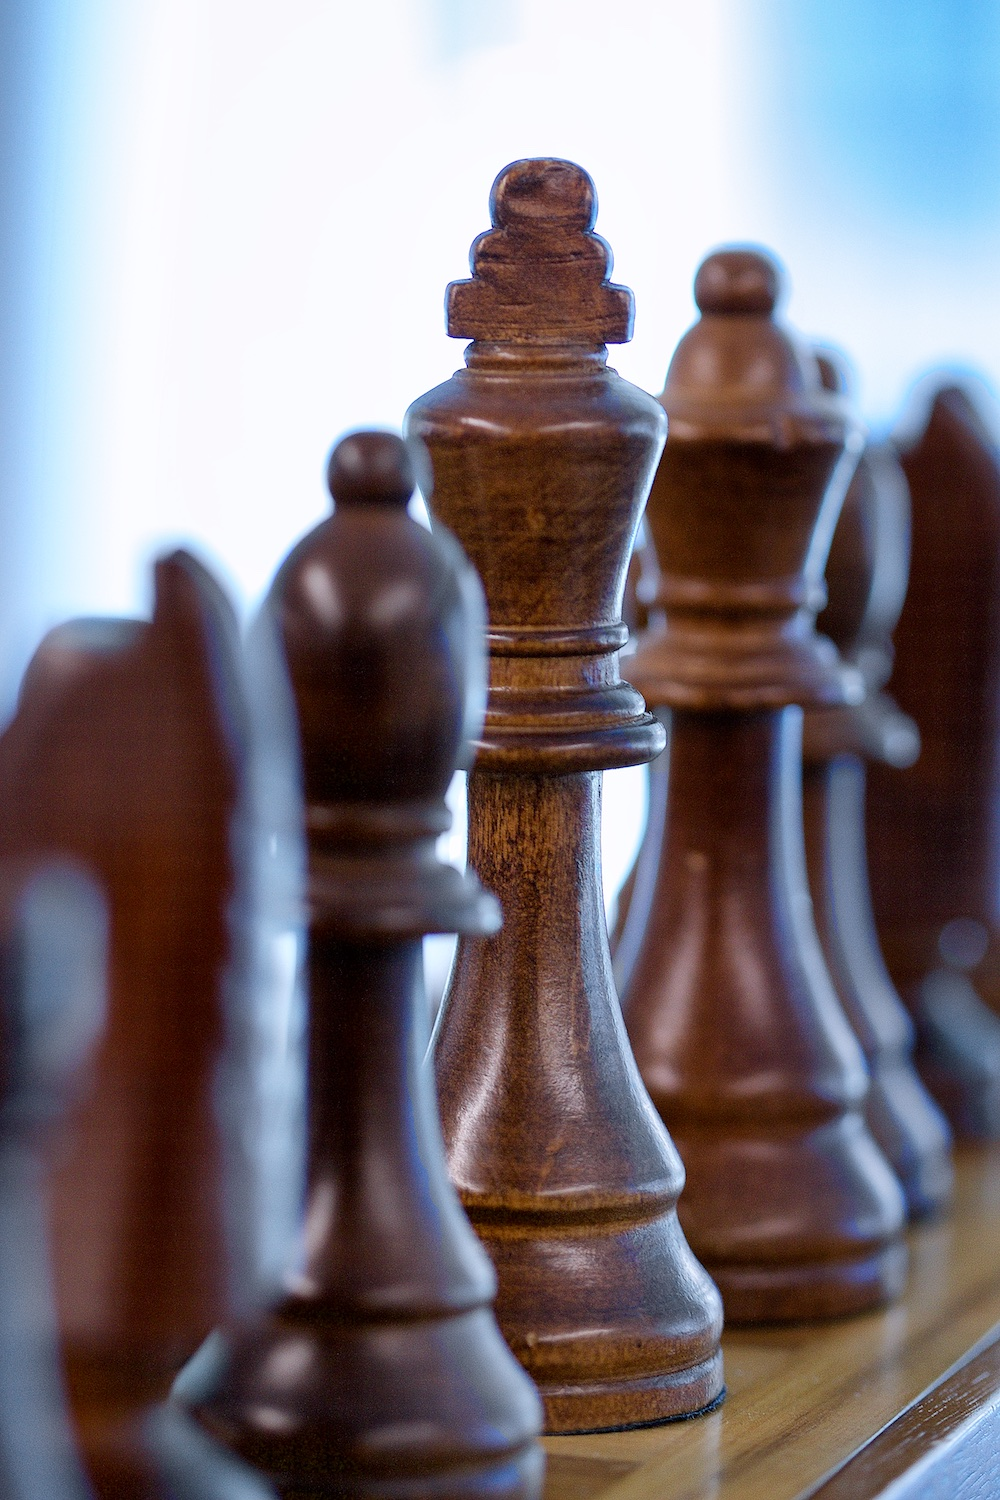 A chess board sits in the technology area.